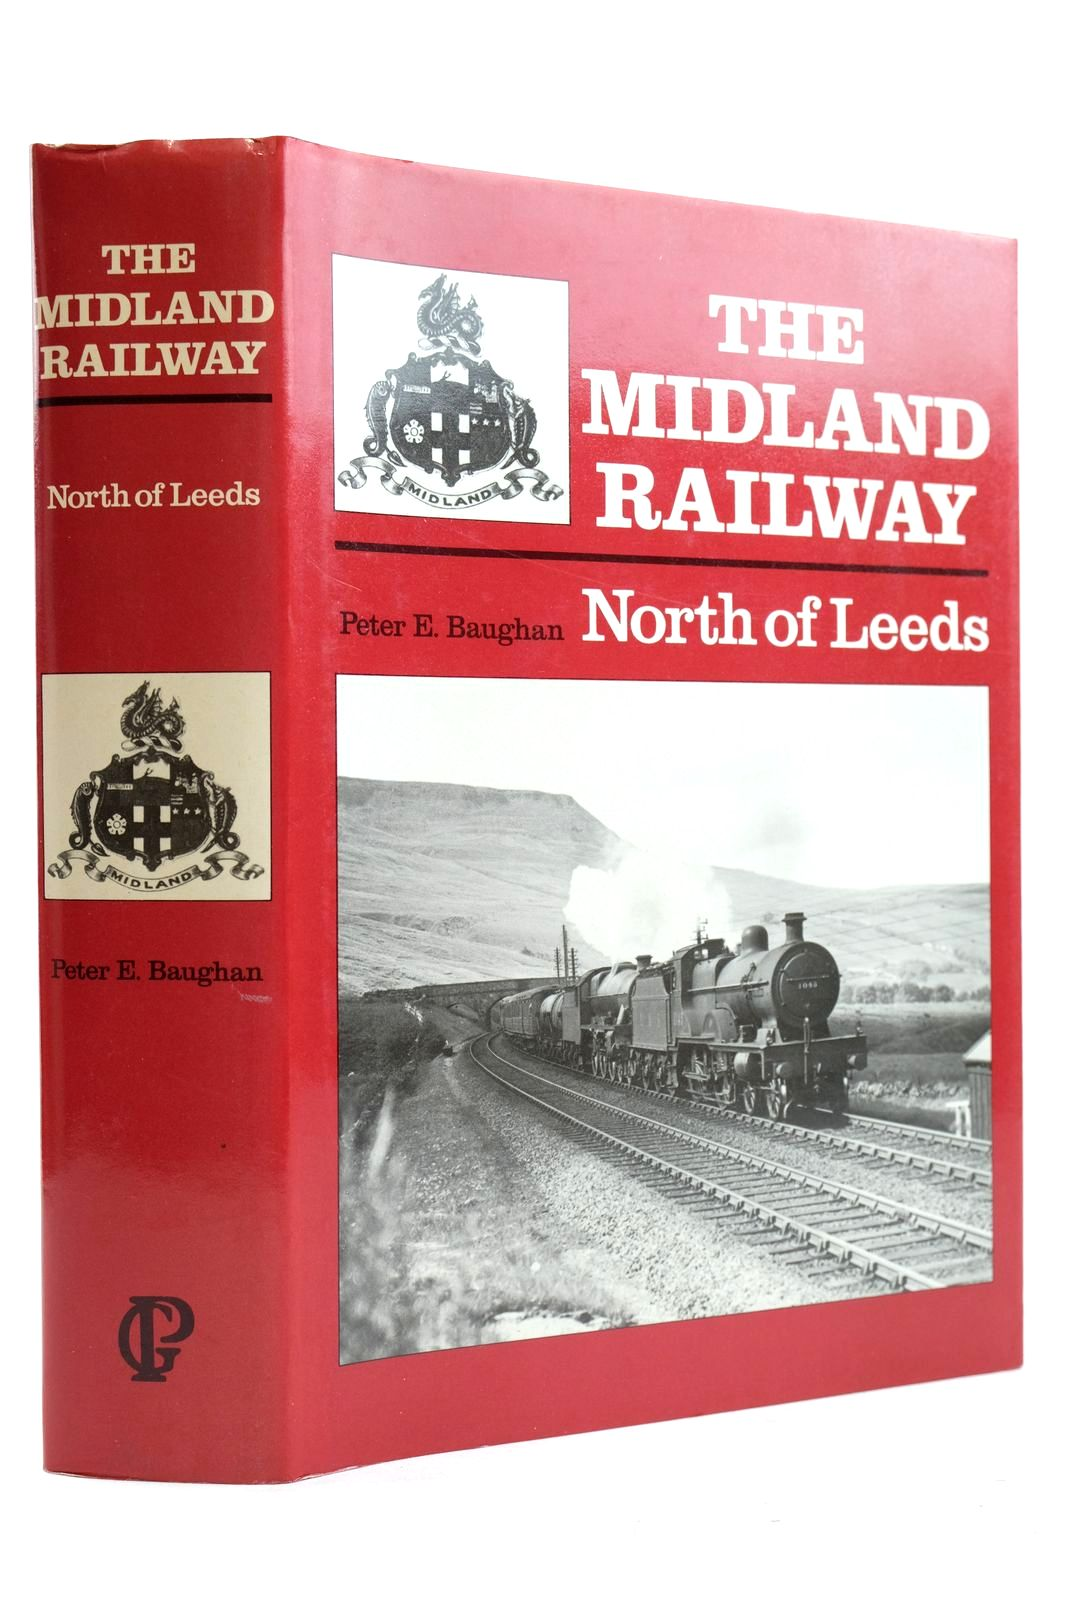 Photo of MIDLAND RAILWAY NORTH OF LEEDS written by Baughan, Peter E. published by Book Club Associates (STOCK CODE: 2133009)  for sale by Stella & Rose's Books